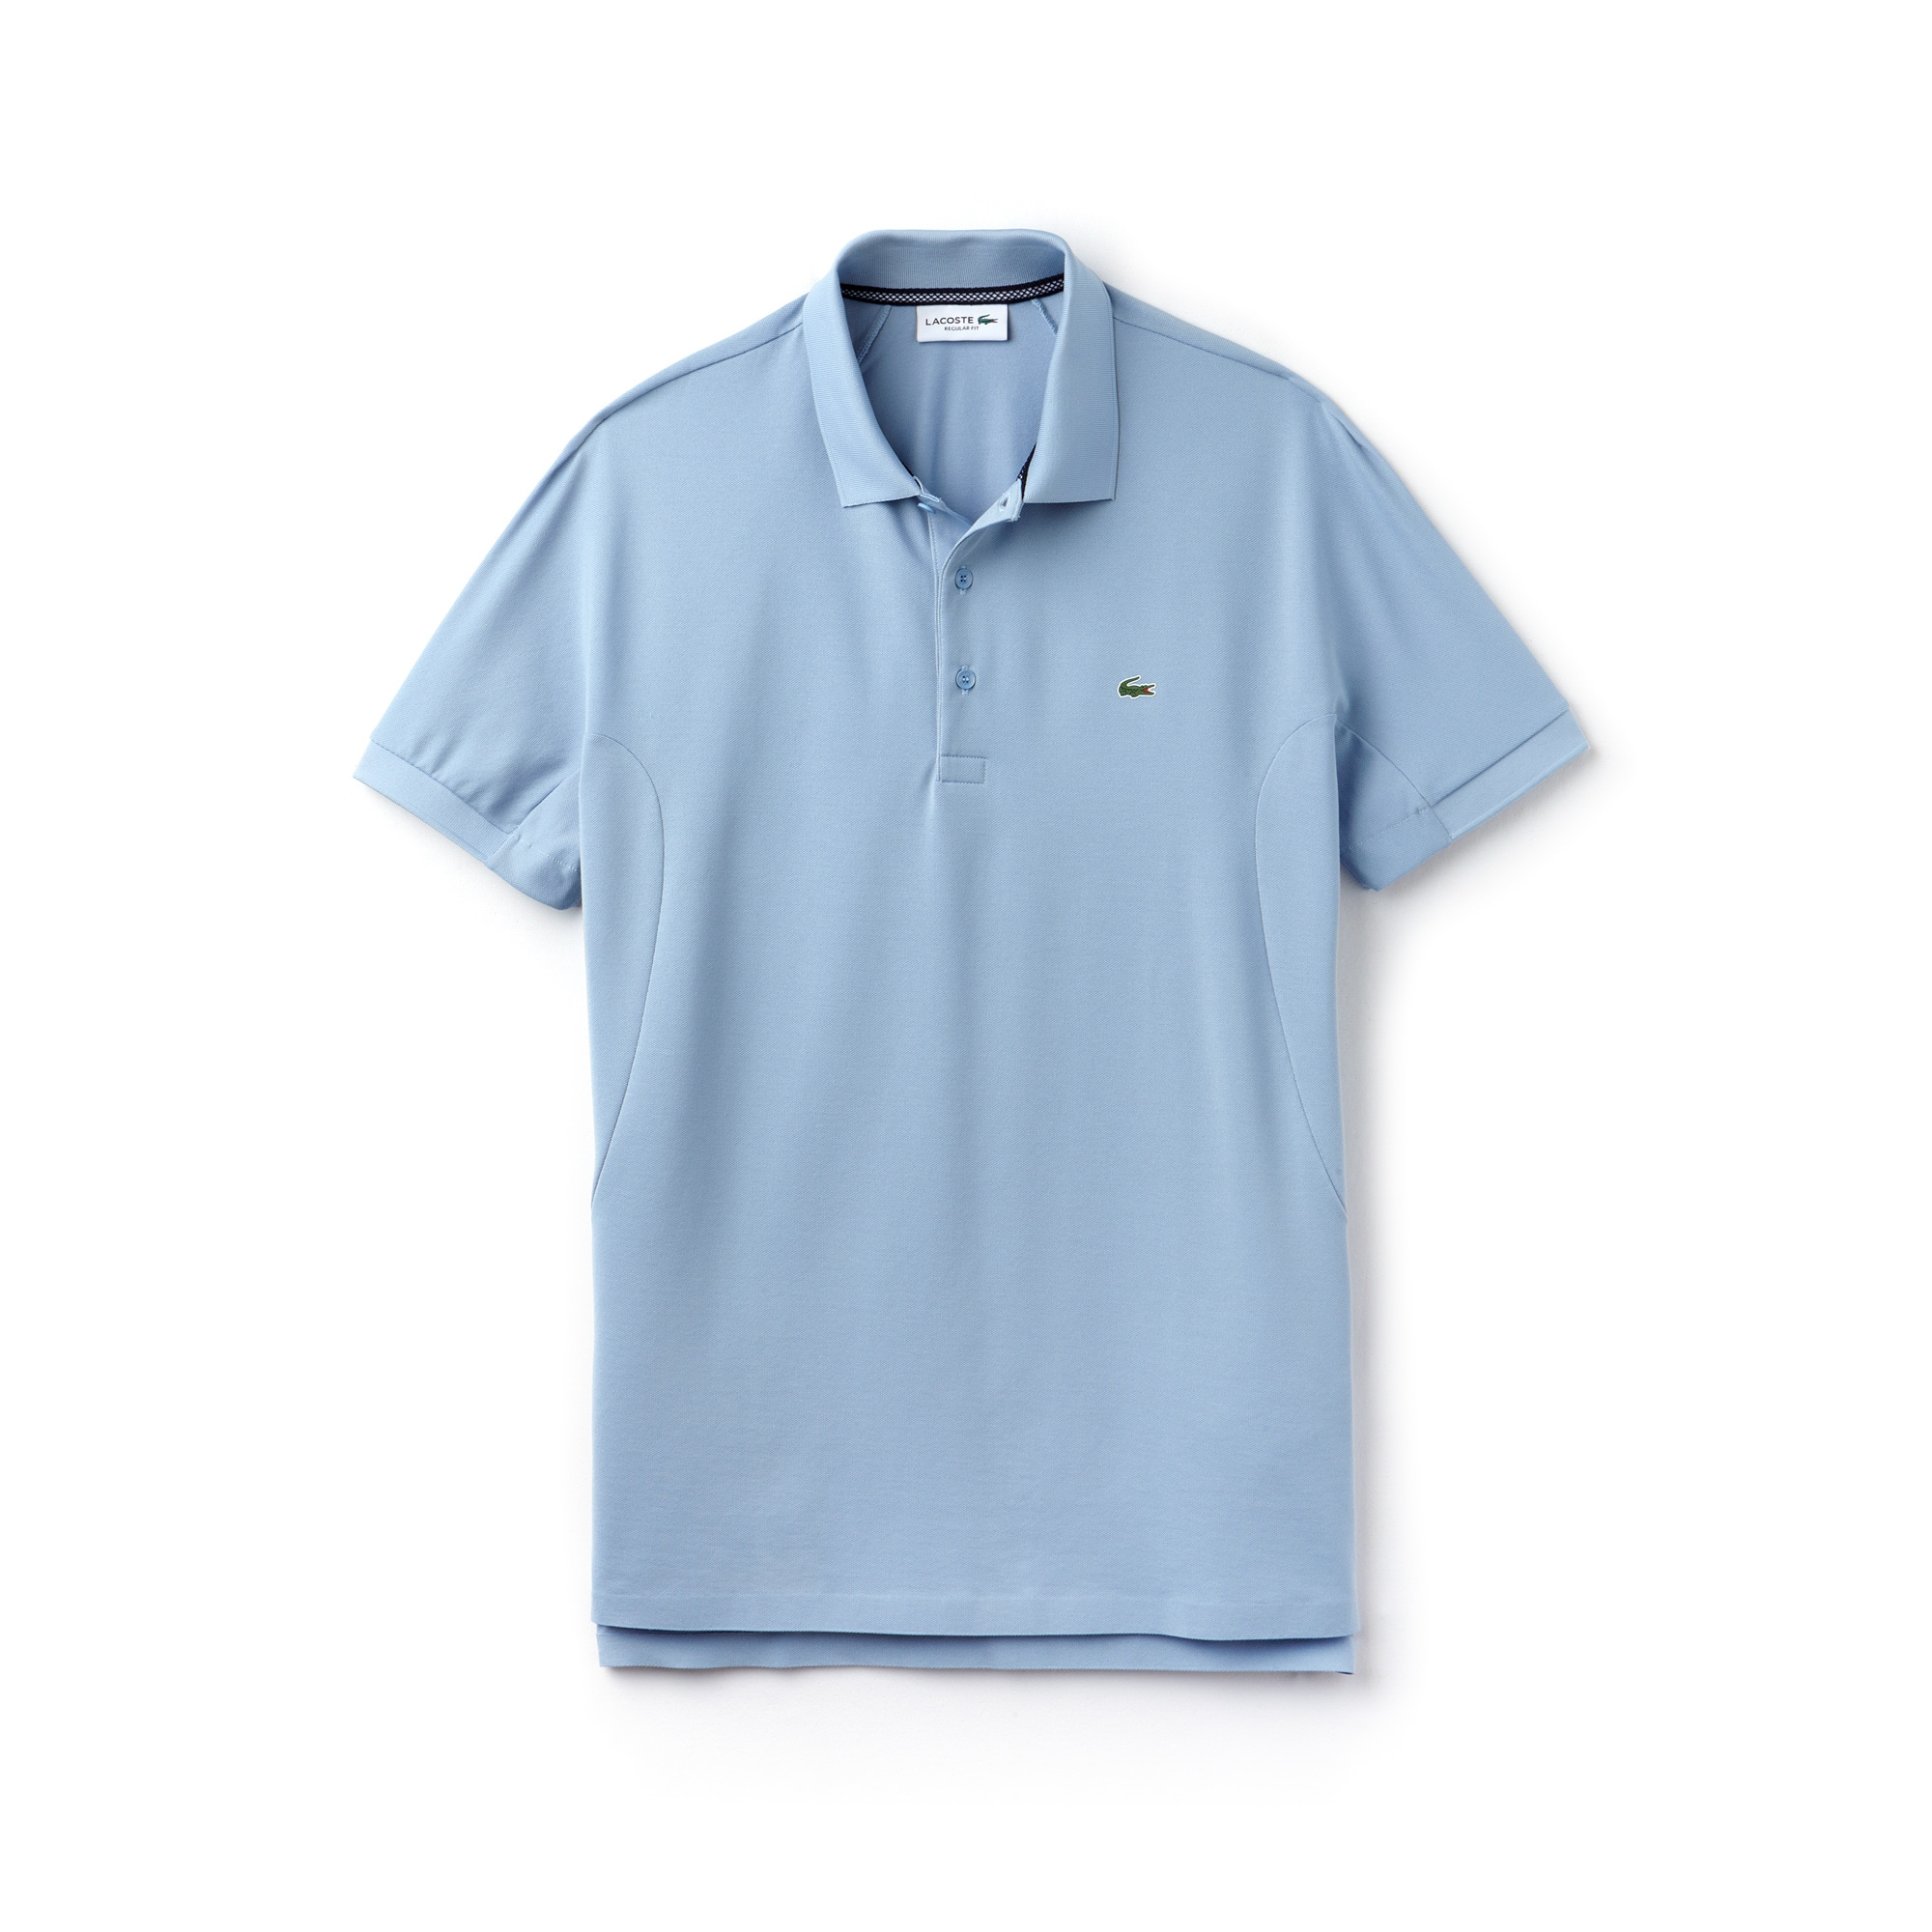 Men's Lacoste 85th Anniversary Limited Edition Tech Piqué Polo Shirt